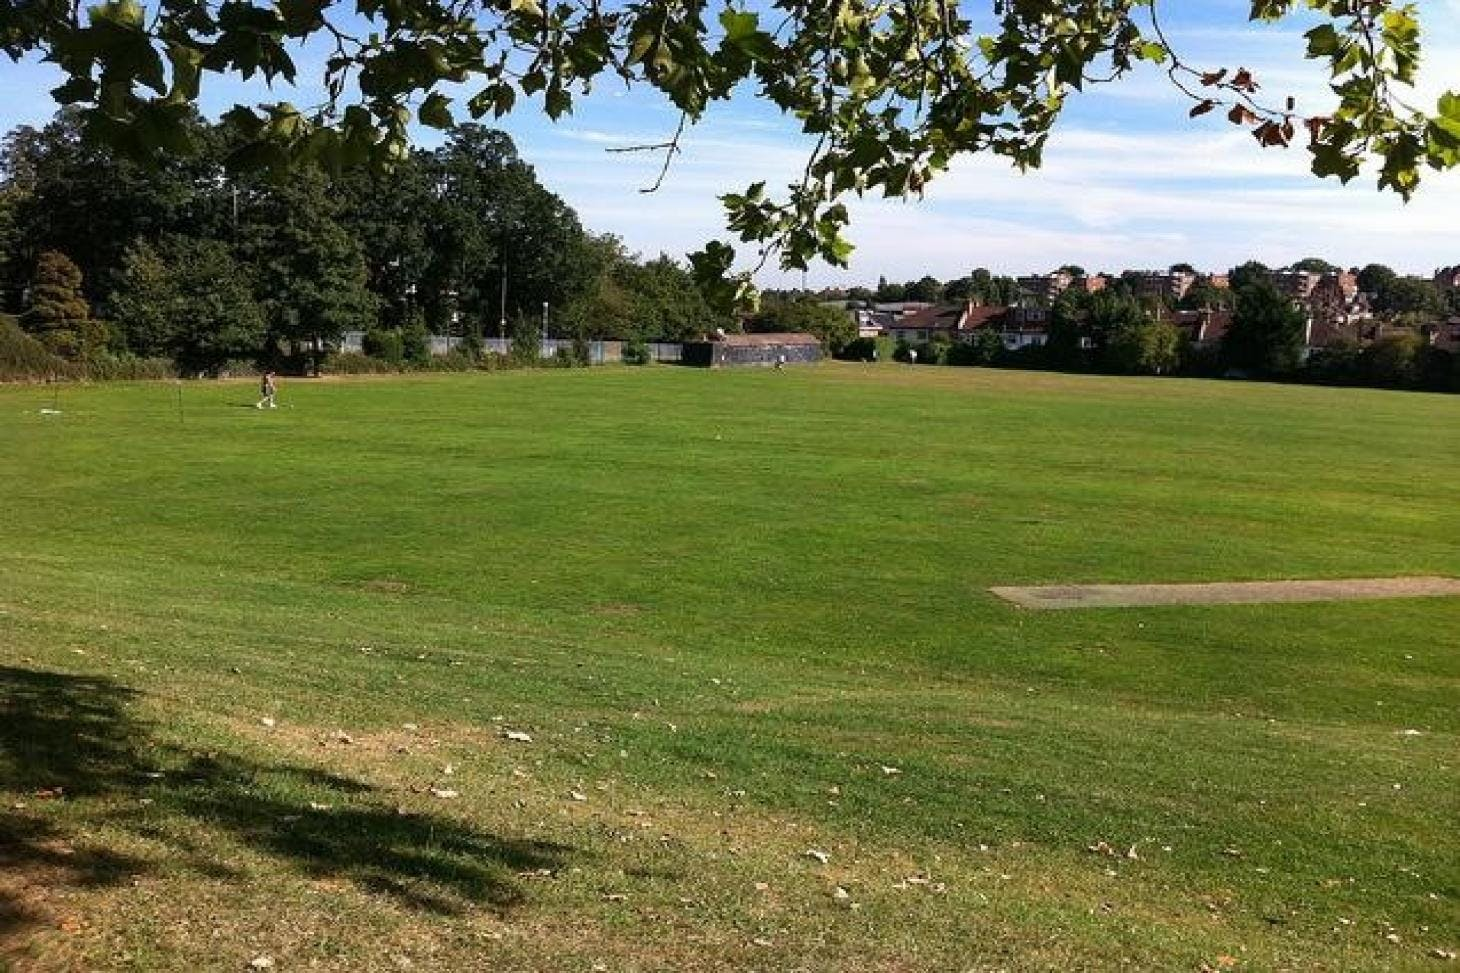 New Southgate Recreation Ground 11 a side | Grass football pitch